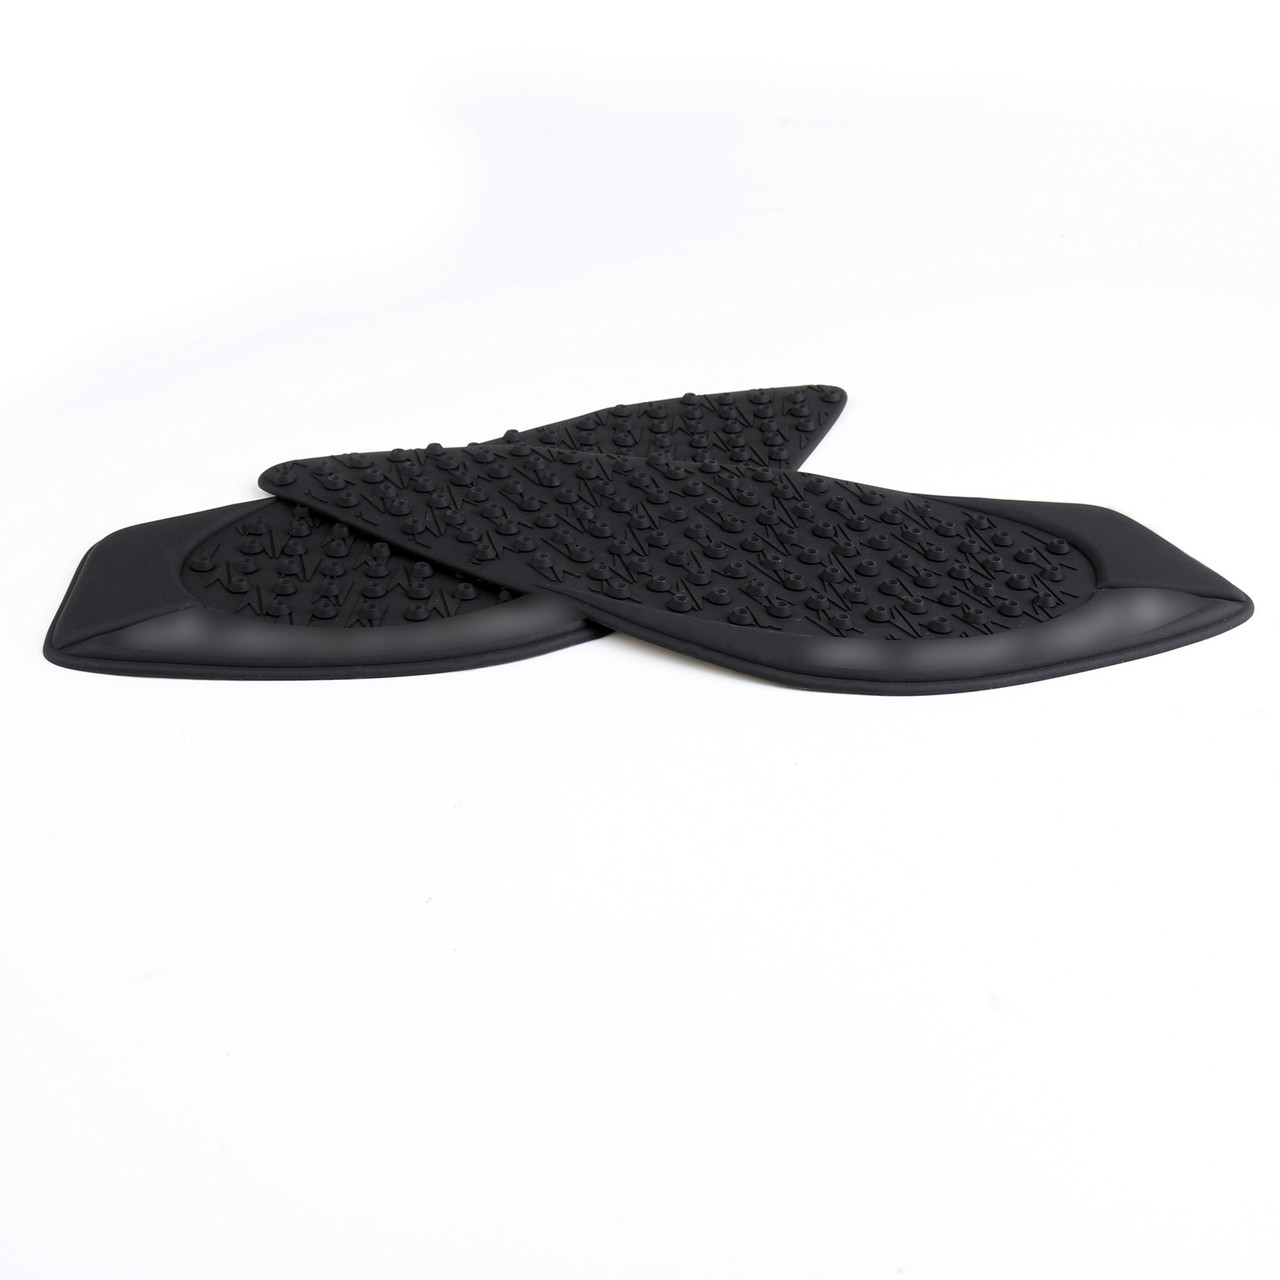 Tank Traction Pad Side Gas Knee Grip Protector Kawasaki Ninja ZX6R (2009-2016) Black